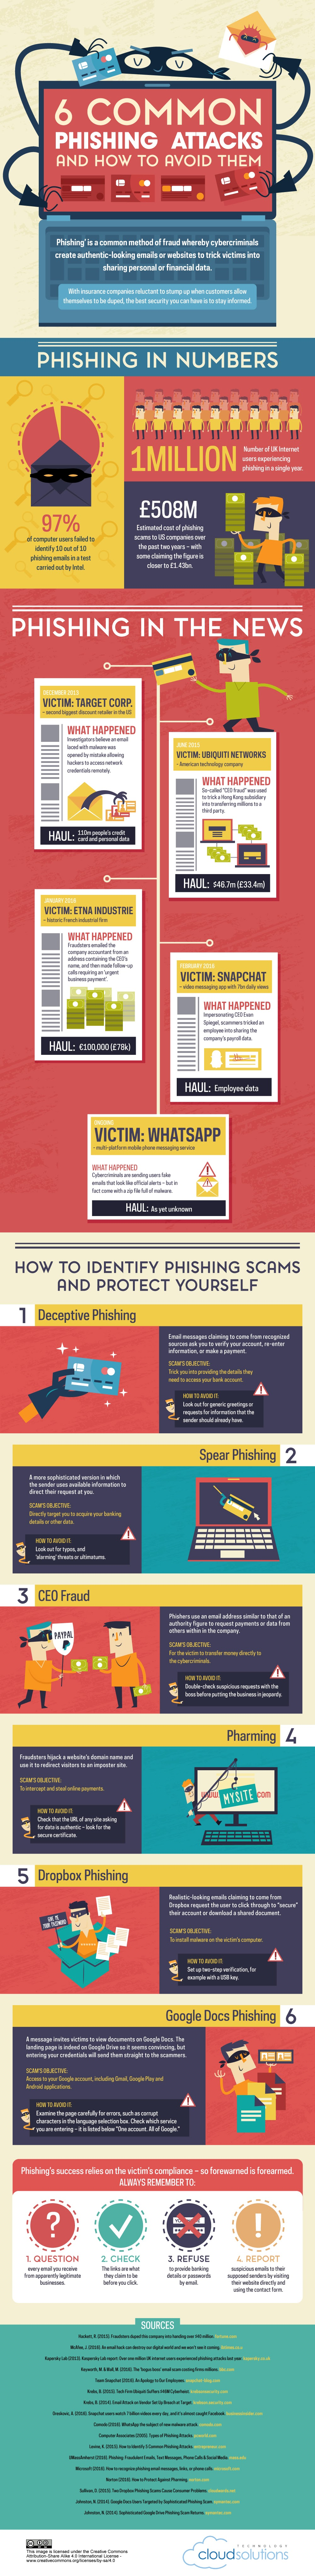 6 Most Common Phishing Attacks and How to Avoid Them [infographic]